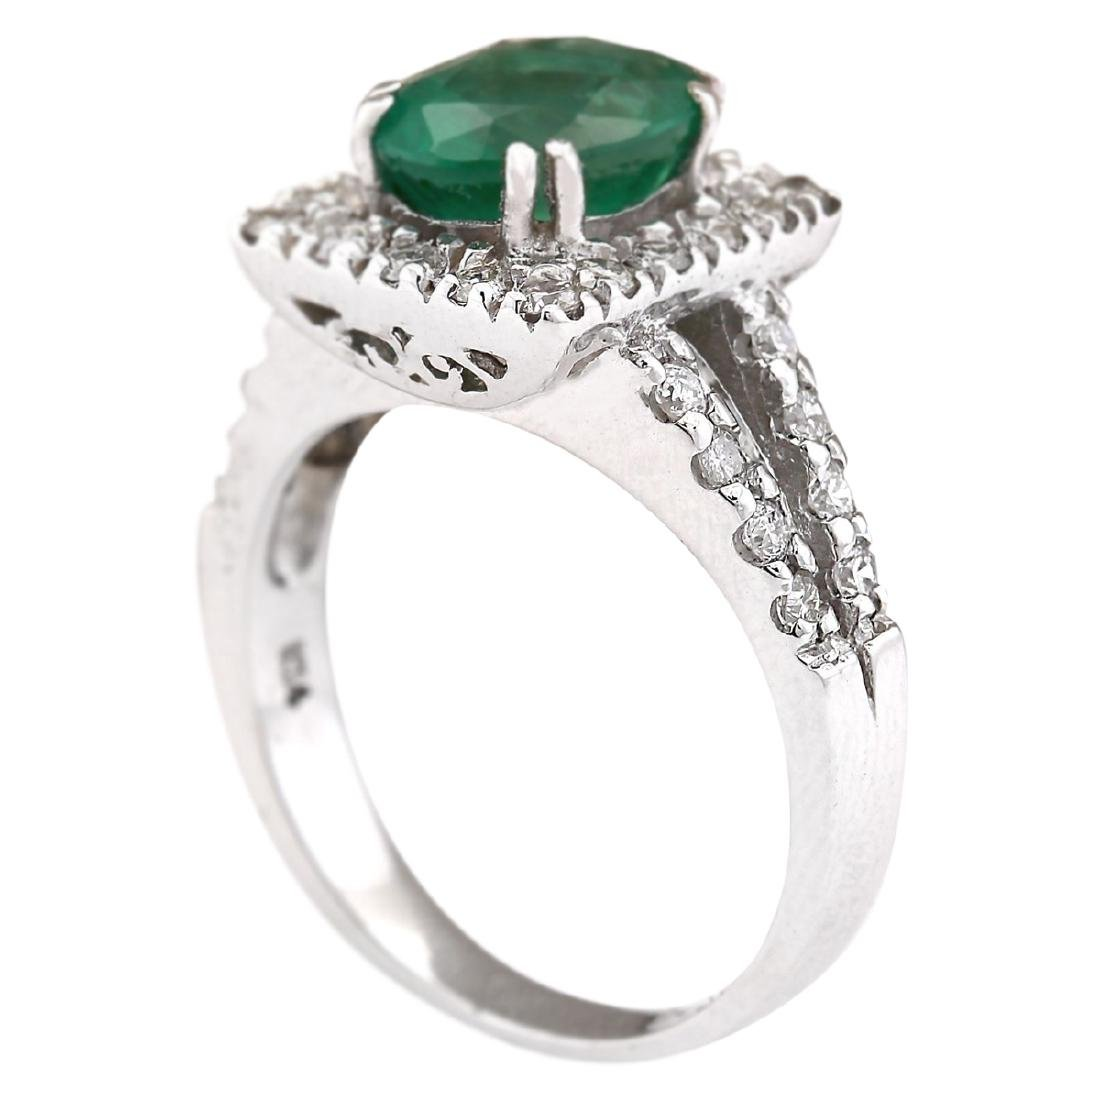 2.89 CTW Natural Emerald And Diamond Ring In 18K White - 4